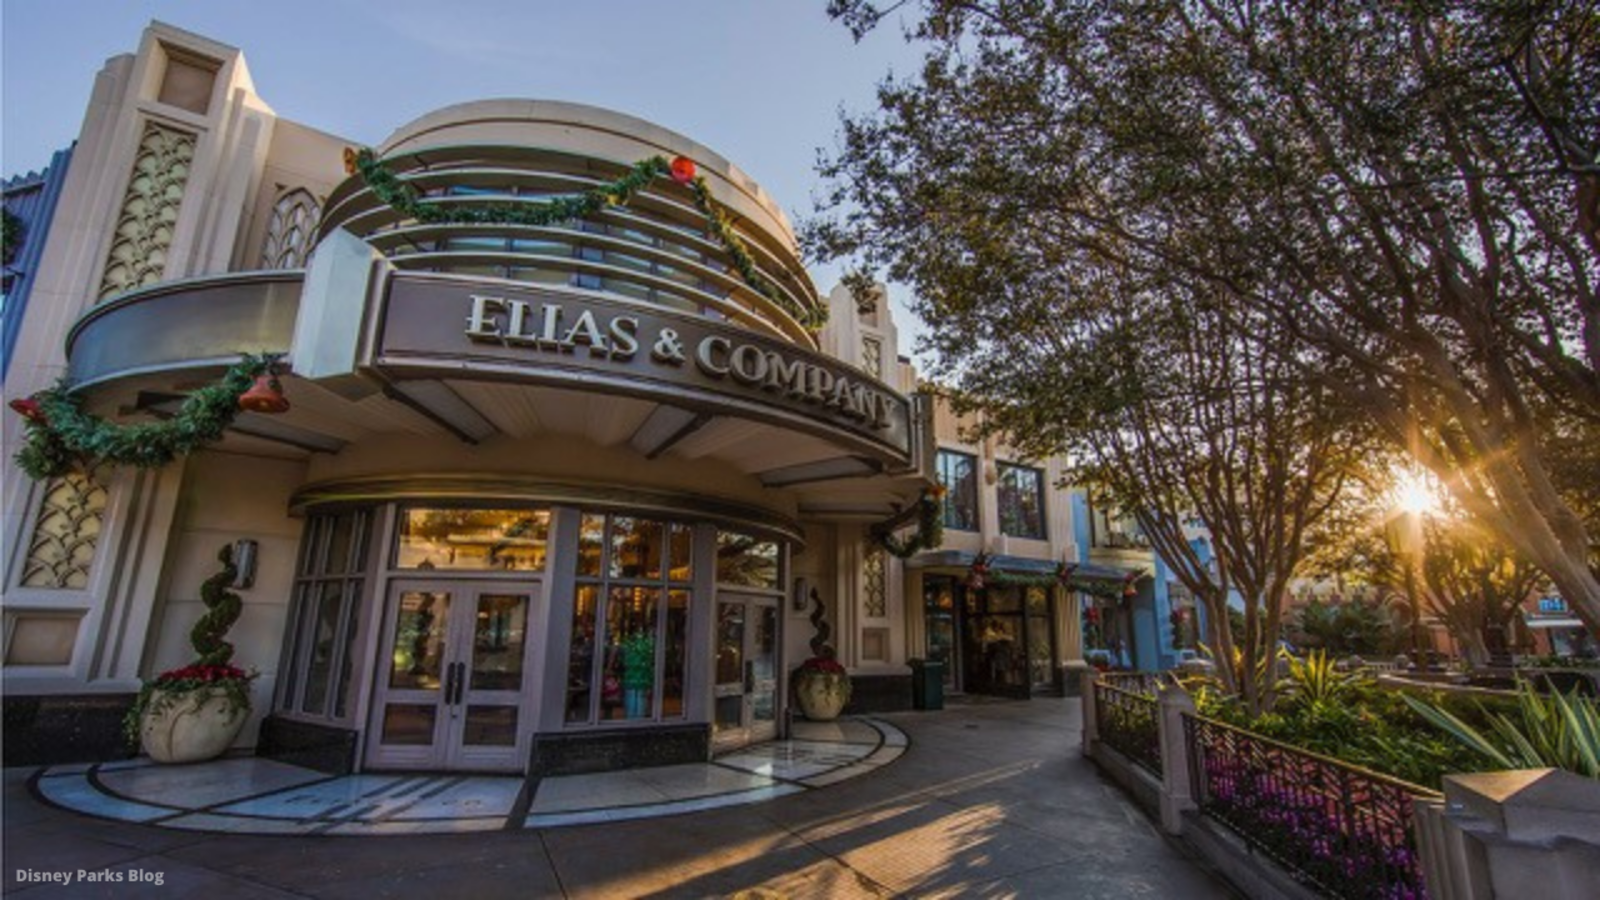 Shopping Expansion Disney dined in November at the California Adventure Park at the Disneyland Resort